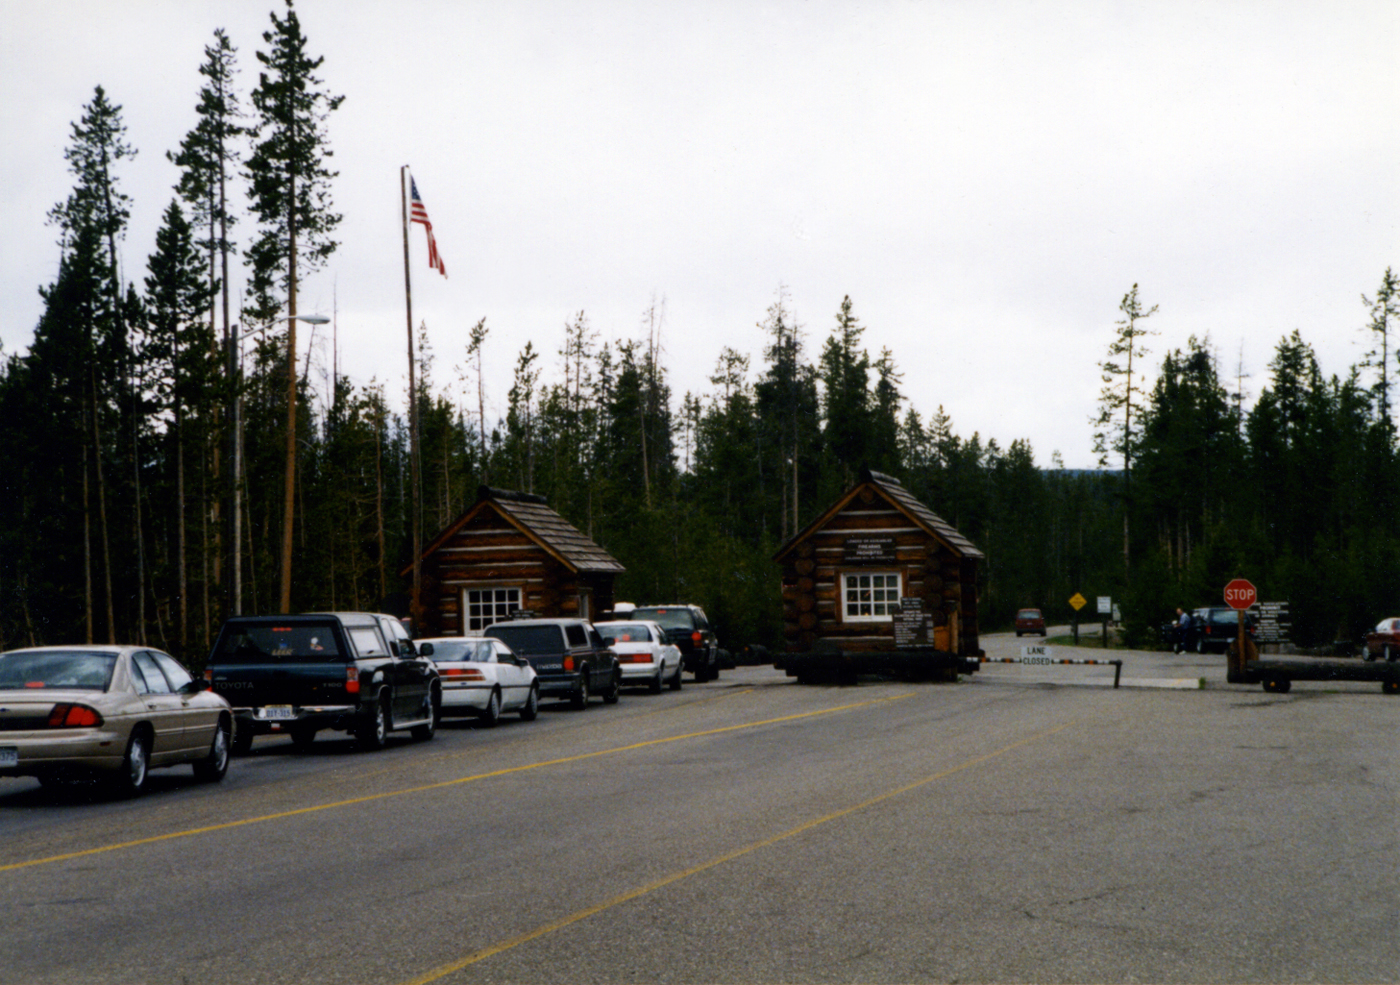 South Entrance to Yellowstone National Park by John William Uhler © Copyright All Rights Reserved